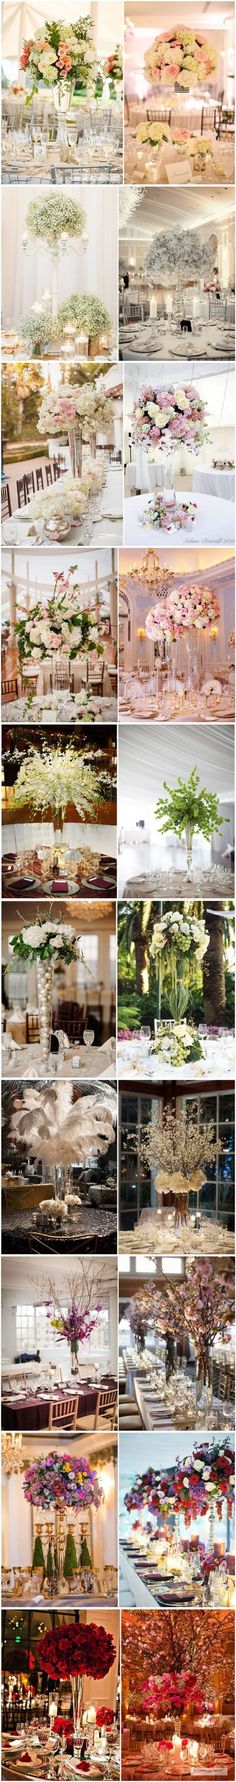 TOP 20 Tall wedding centerpiece ideas/top left is pretty, not quite the way the flowers are arranged/ and only eucalyptus Tall Wedding Centerpieces, Wedding Table Decorations, Wedding Flower Arrangements, Floral Centerpieces, Floral Arrangements, Centerpiece Ideas, Quinceanera Decorations, Tall Centerpiece, Tall Vases